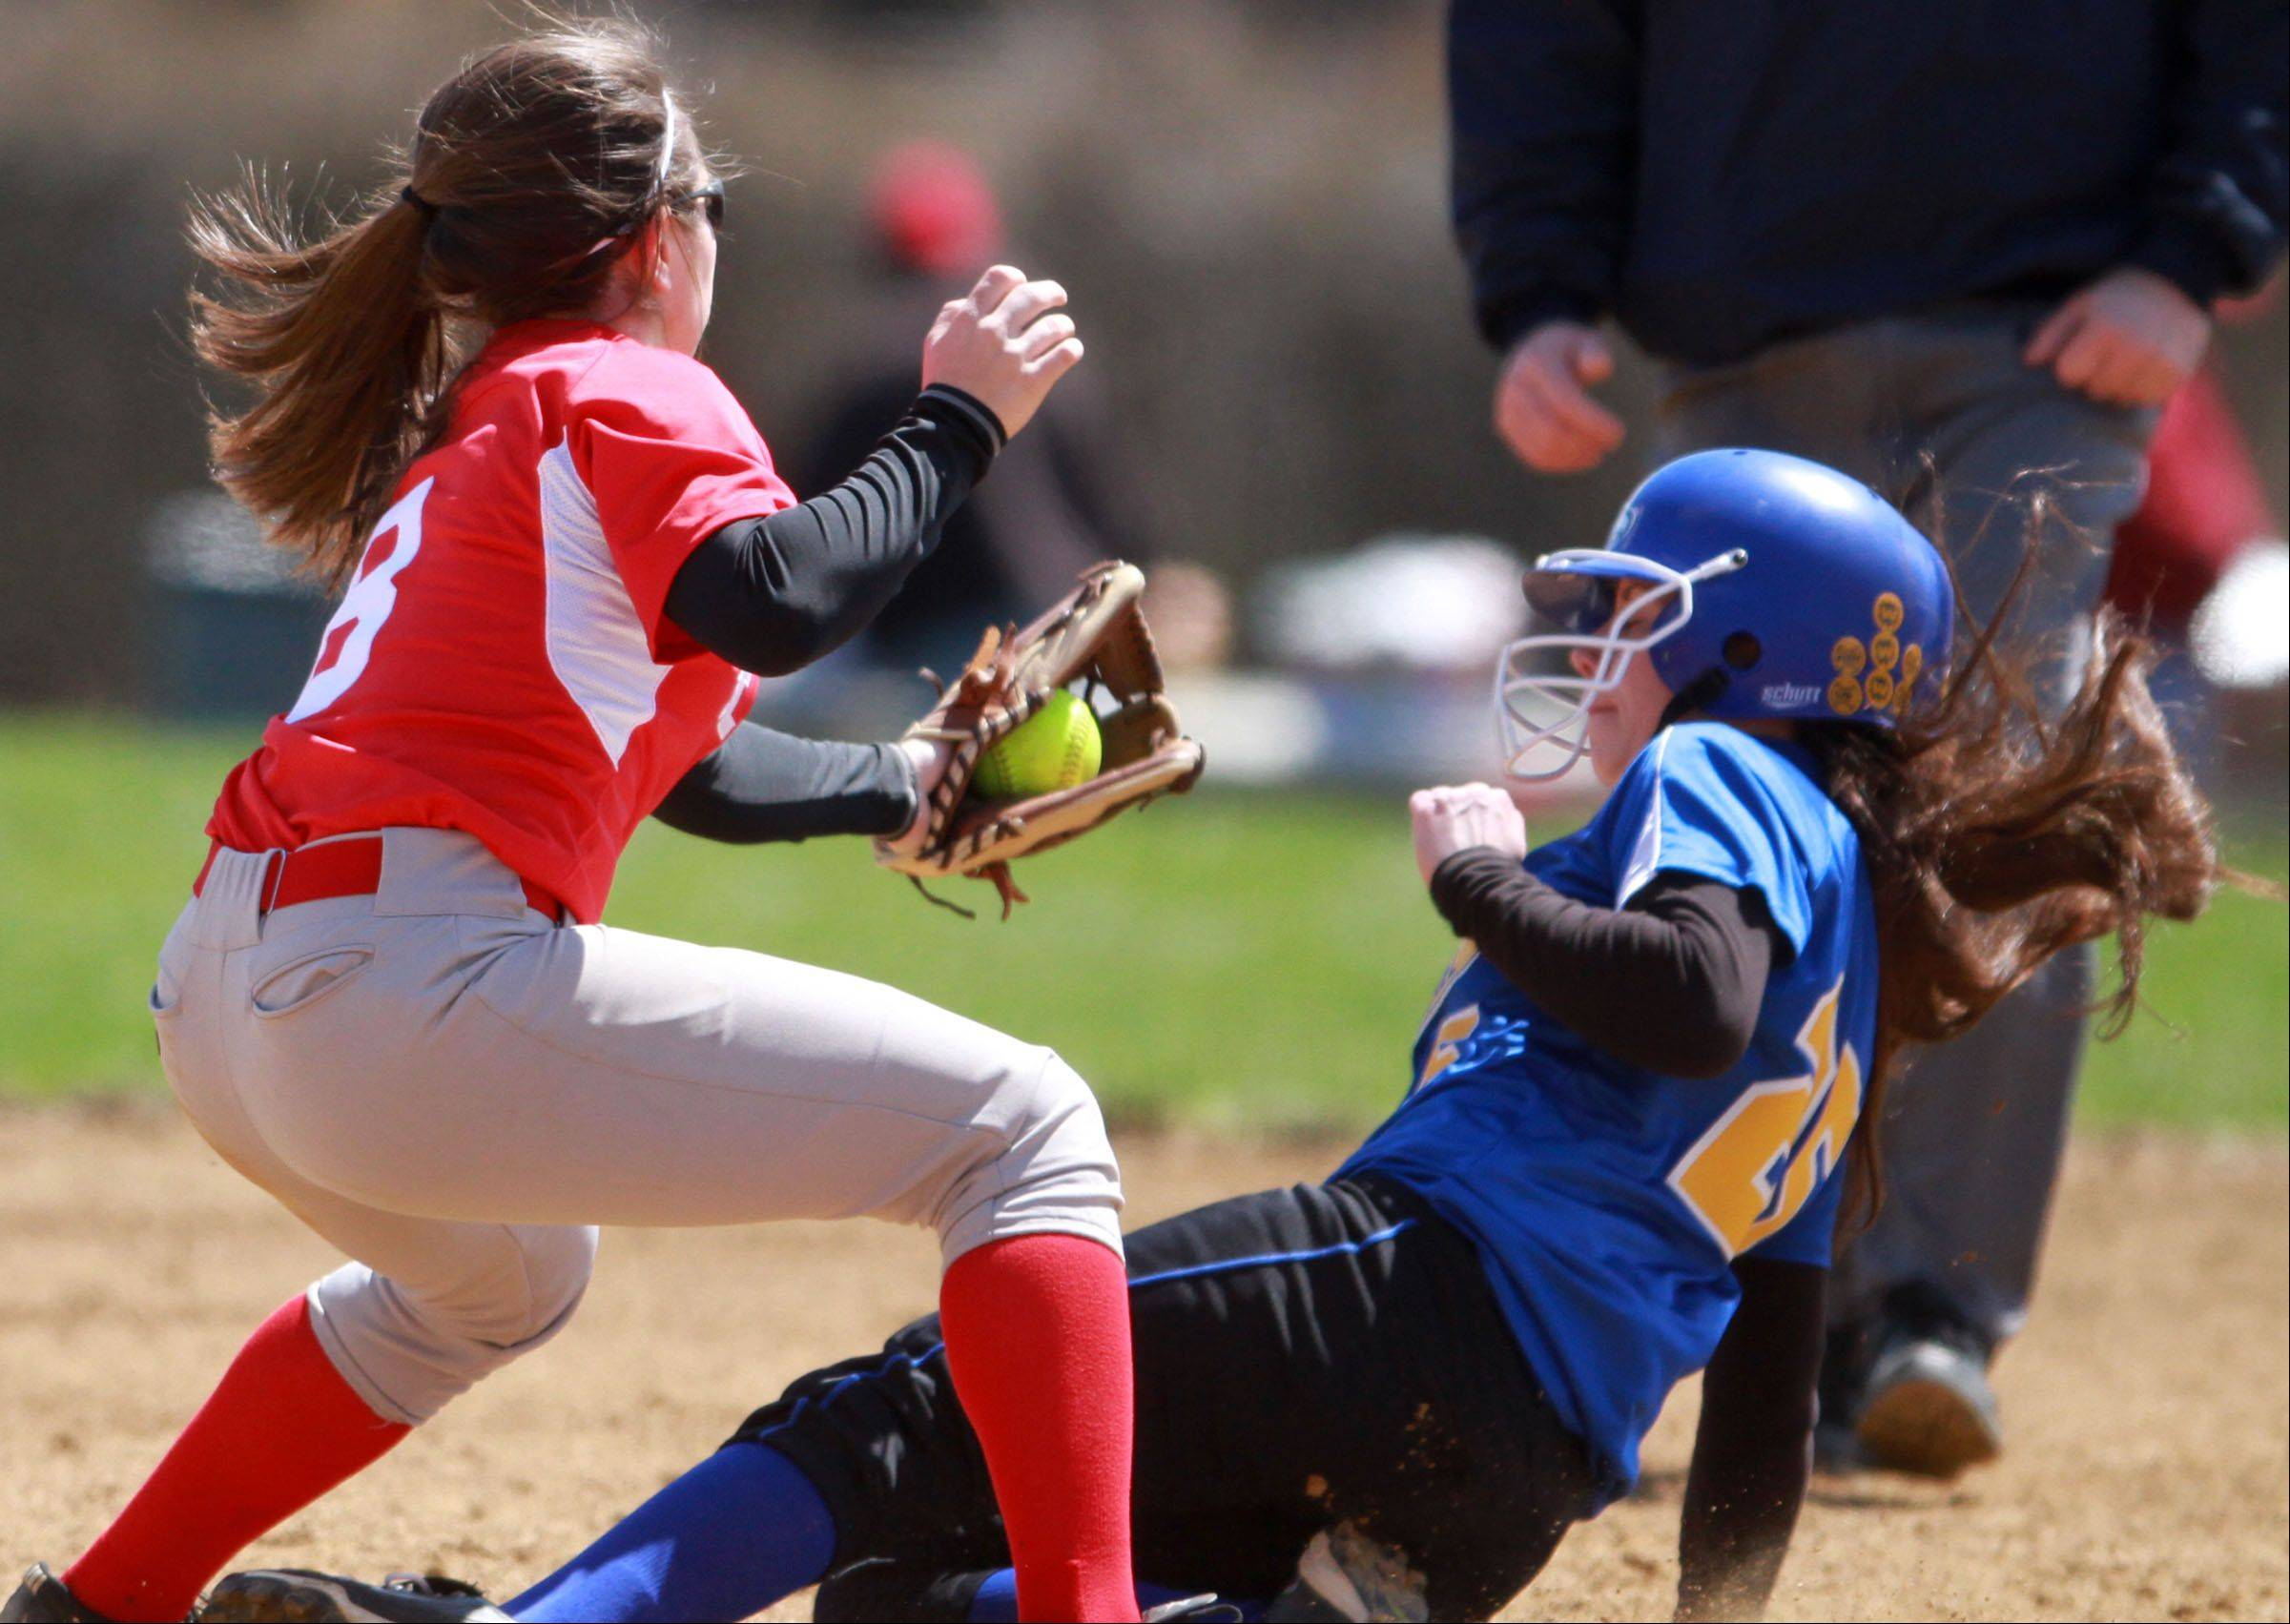 Mundelein's Maddie Zazas has Johnsburg's Kelly Ackermann out at second at Mundelein on Saturday.